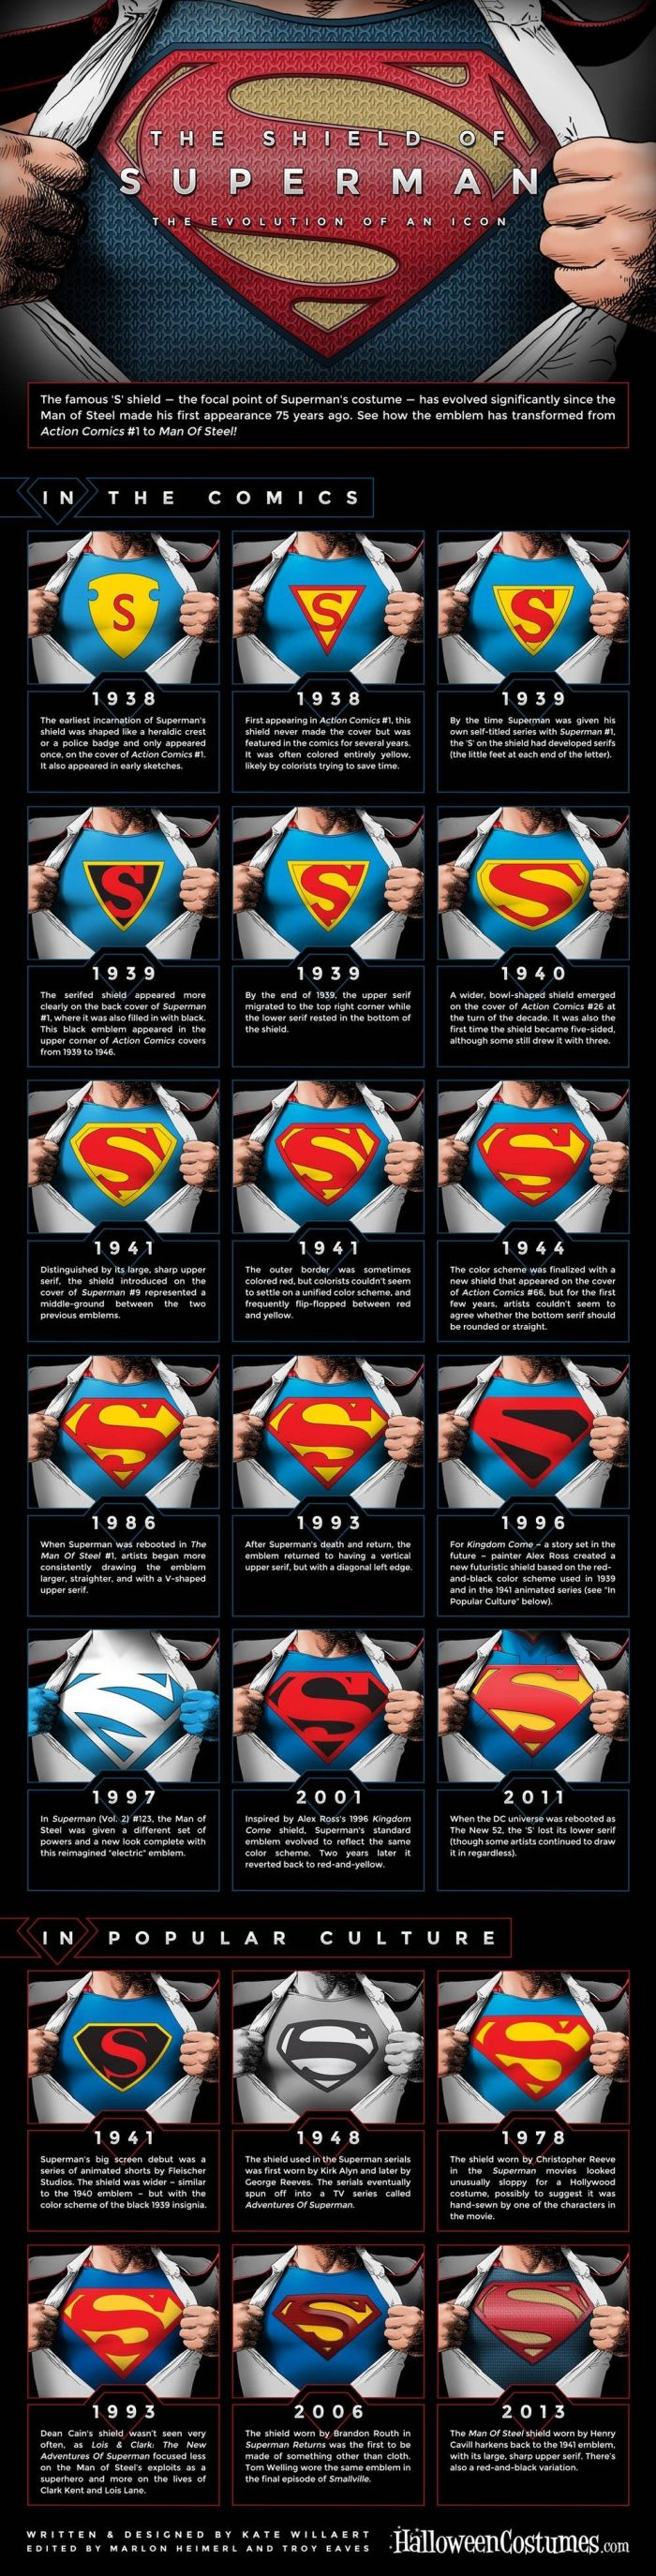 The Evolution of Superman's Symbol (infographic)